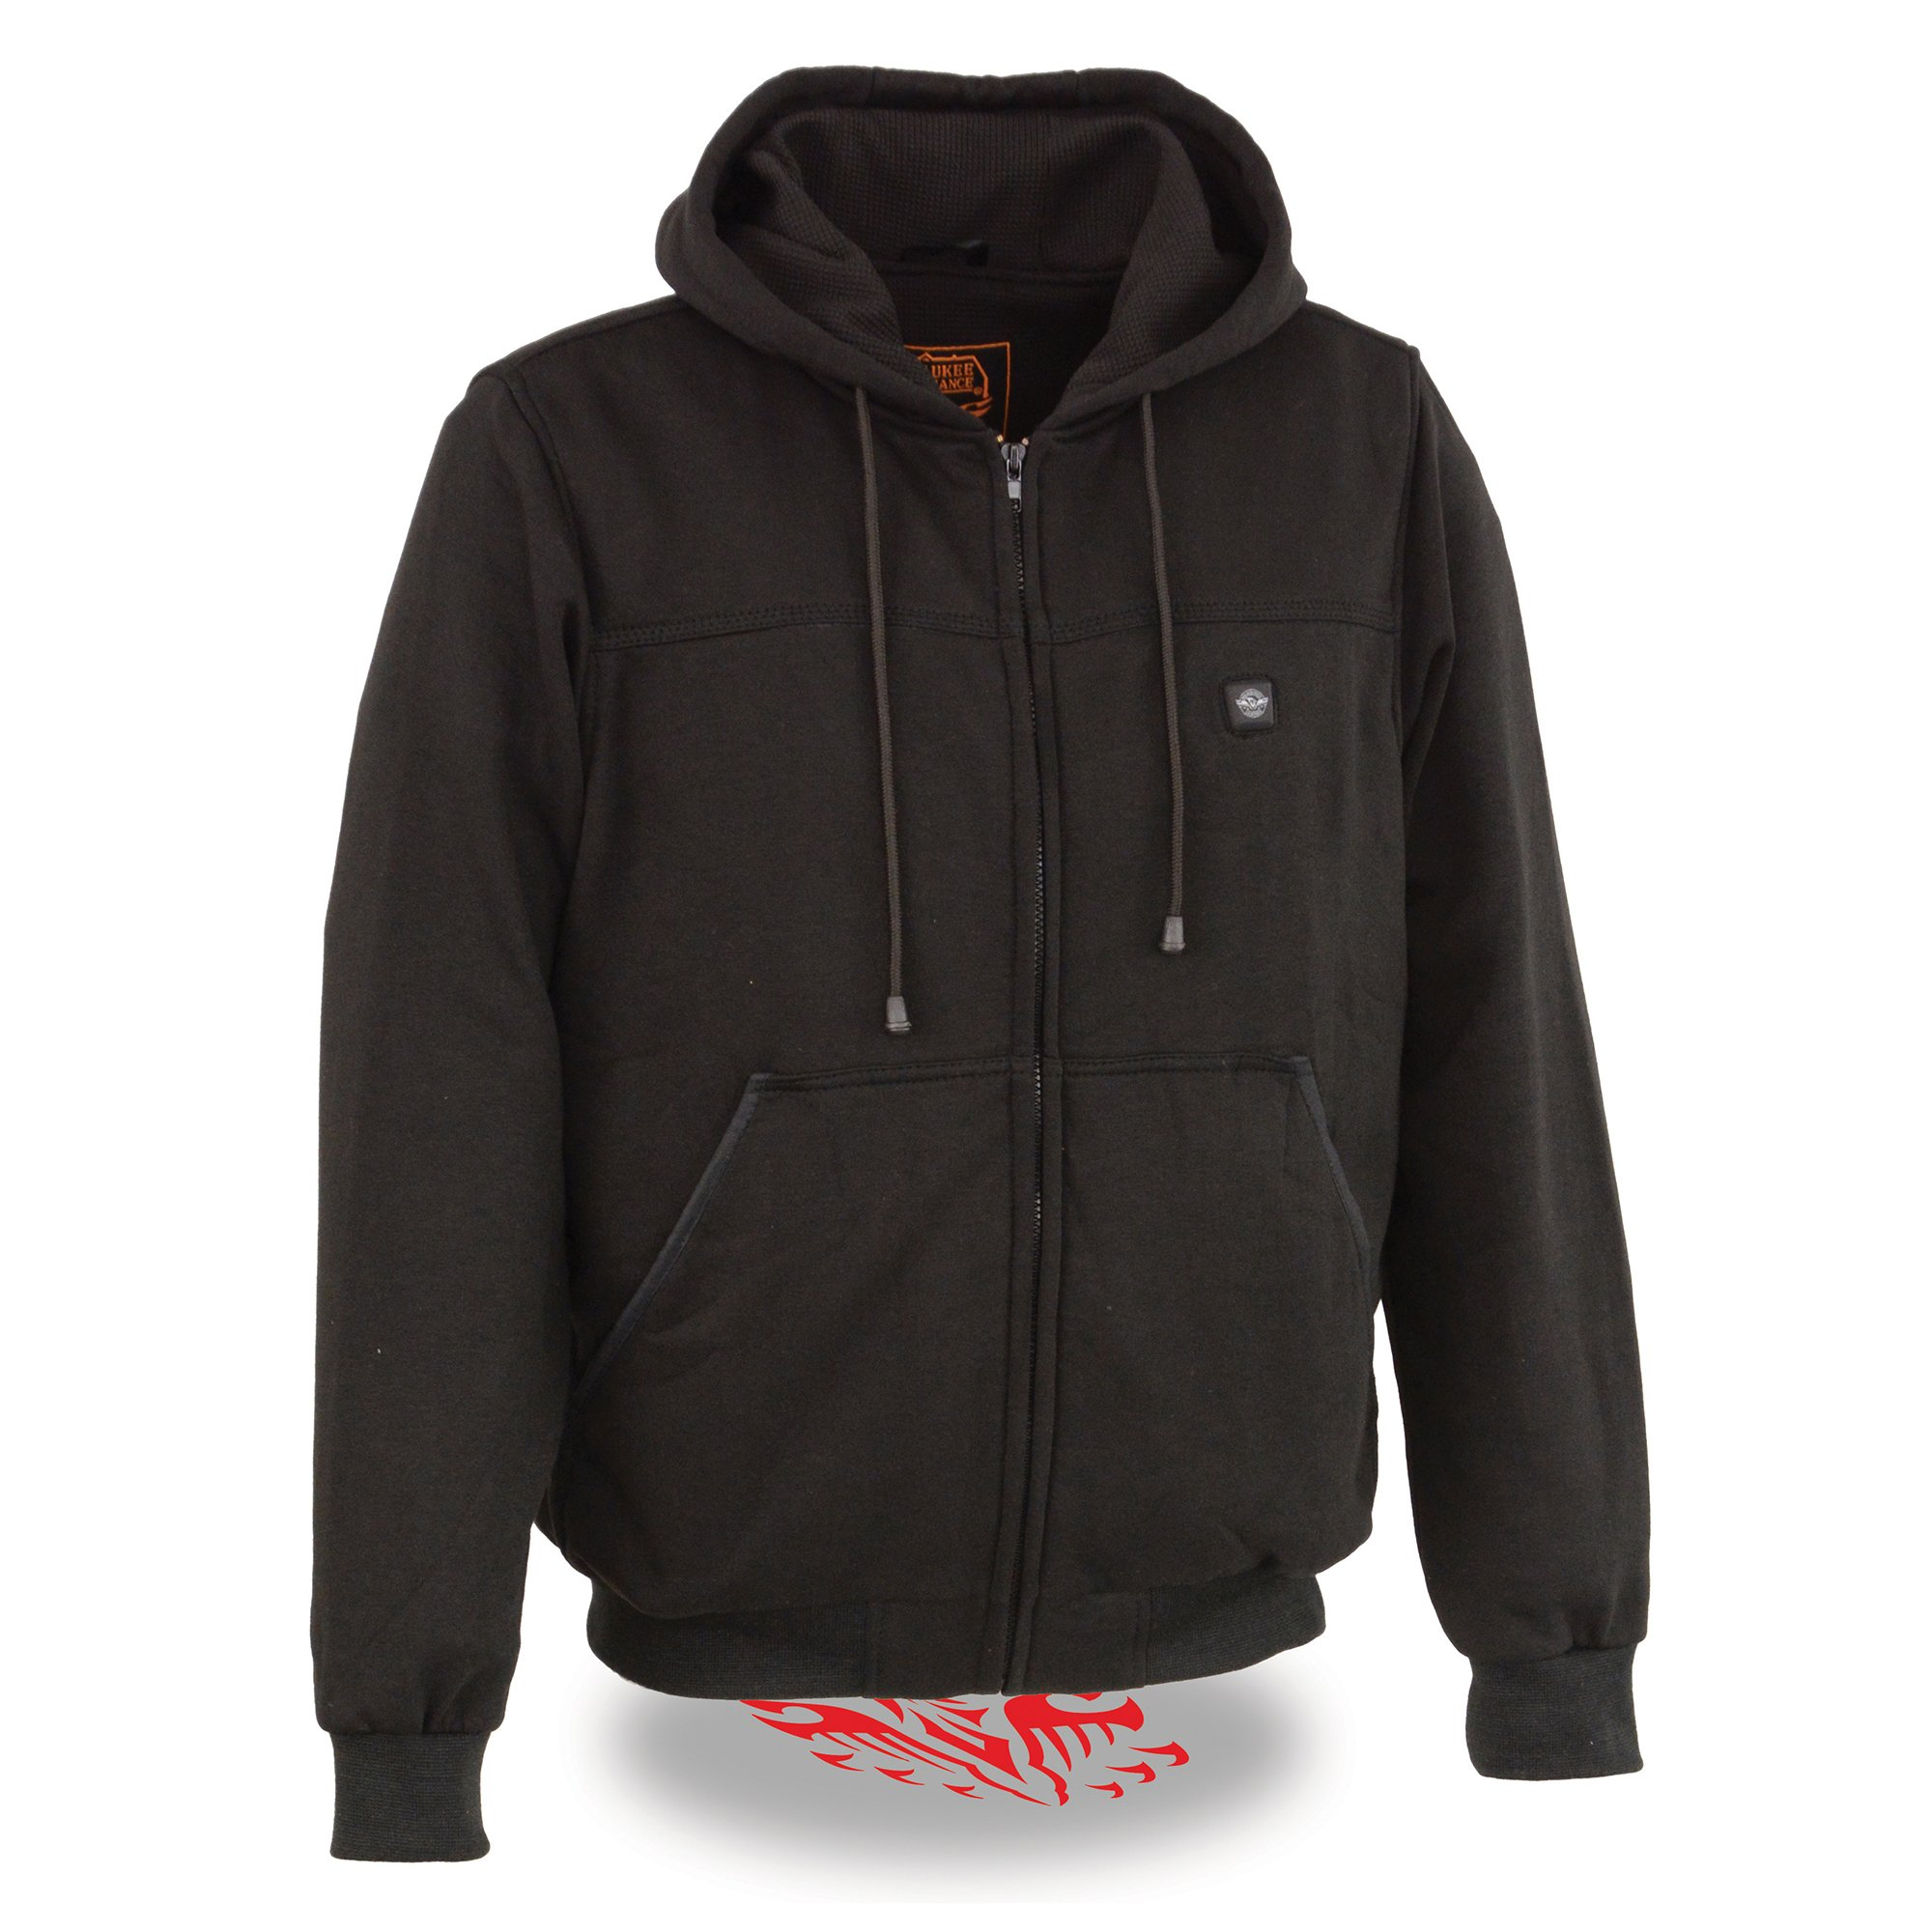 Milwaukee Performance Men's Heated Hoodie with Front and Back Heating Elements (Black, 4X-Large)